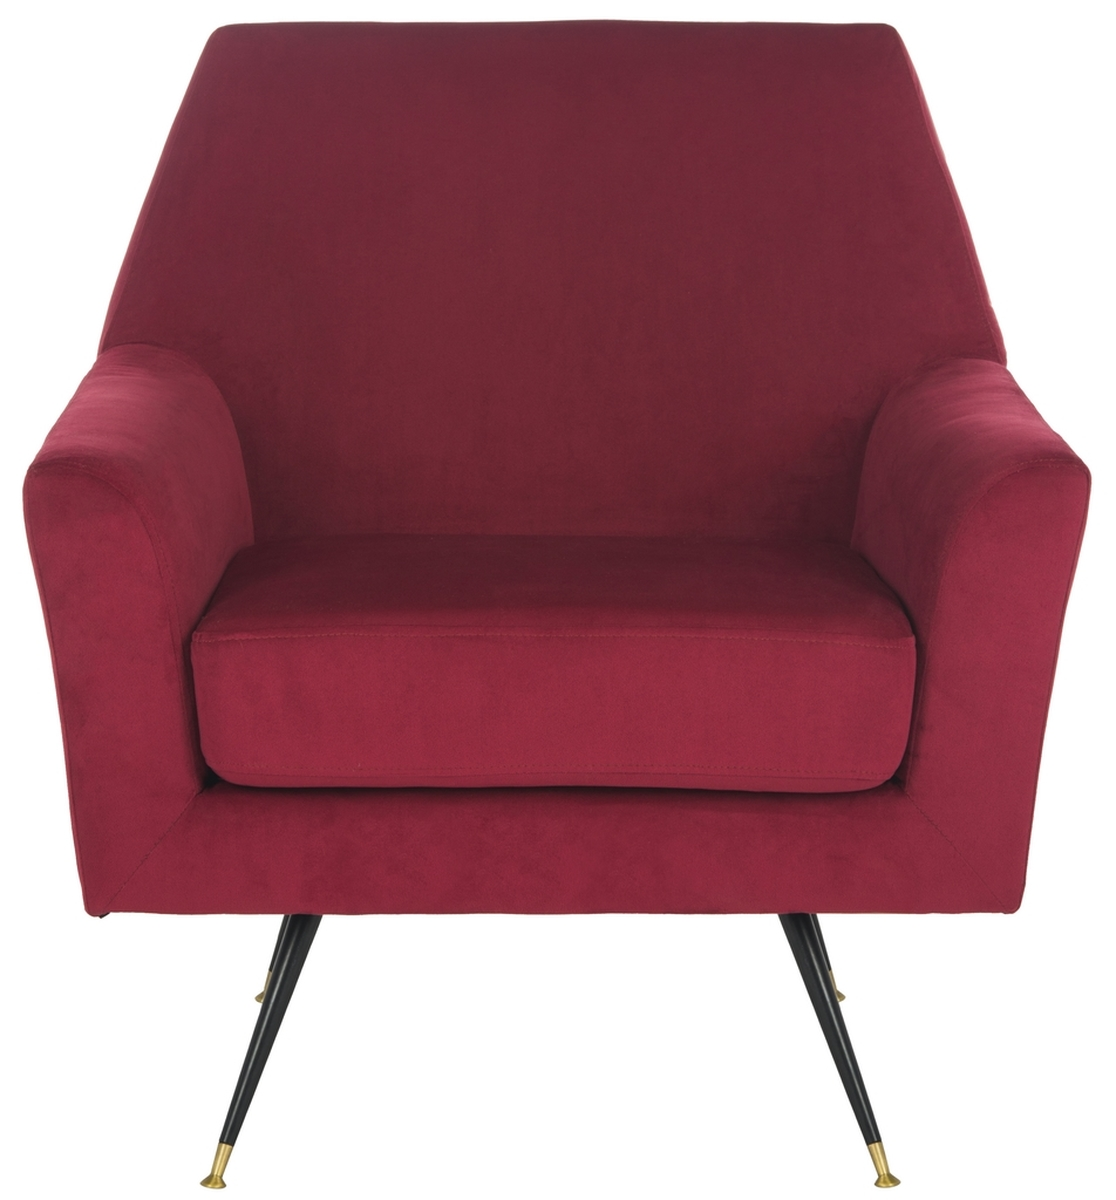 NYNETTE VELVET RETRO MID CENTURY ACCENT CHAIR FOX6270A ACCENT CHAIRS.  Color: Maroon